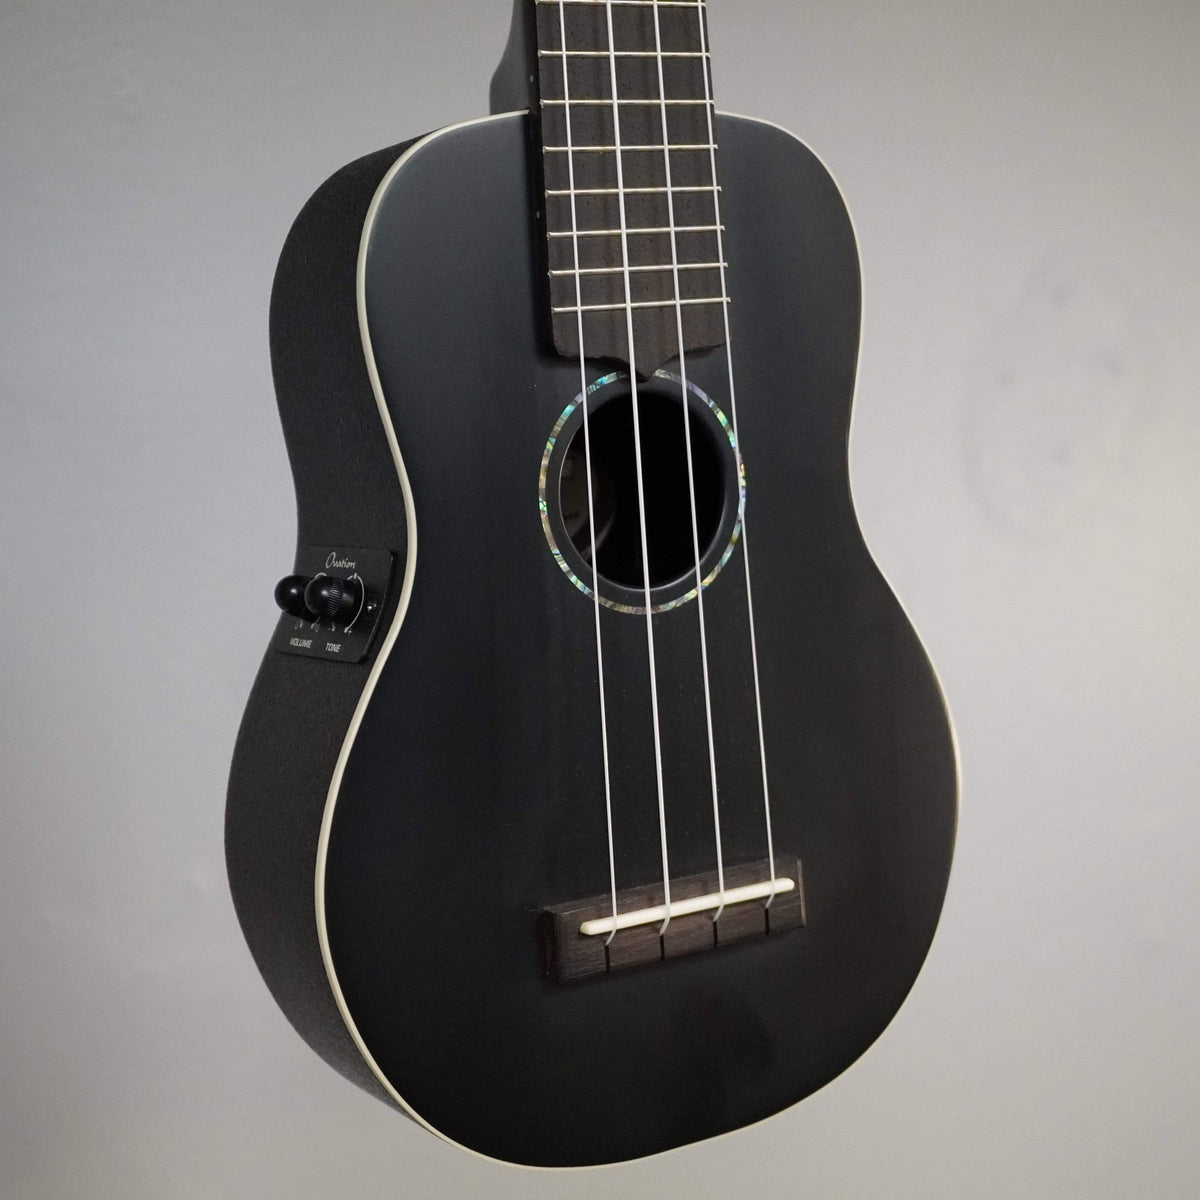 Ovation ACOUSTIC& - FOLK INSTRUMENTS - UKULELE Ovation Americana Collection Soprano Ukulele Black Satin